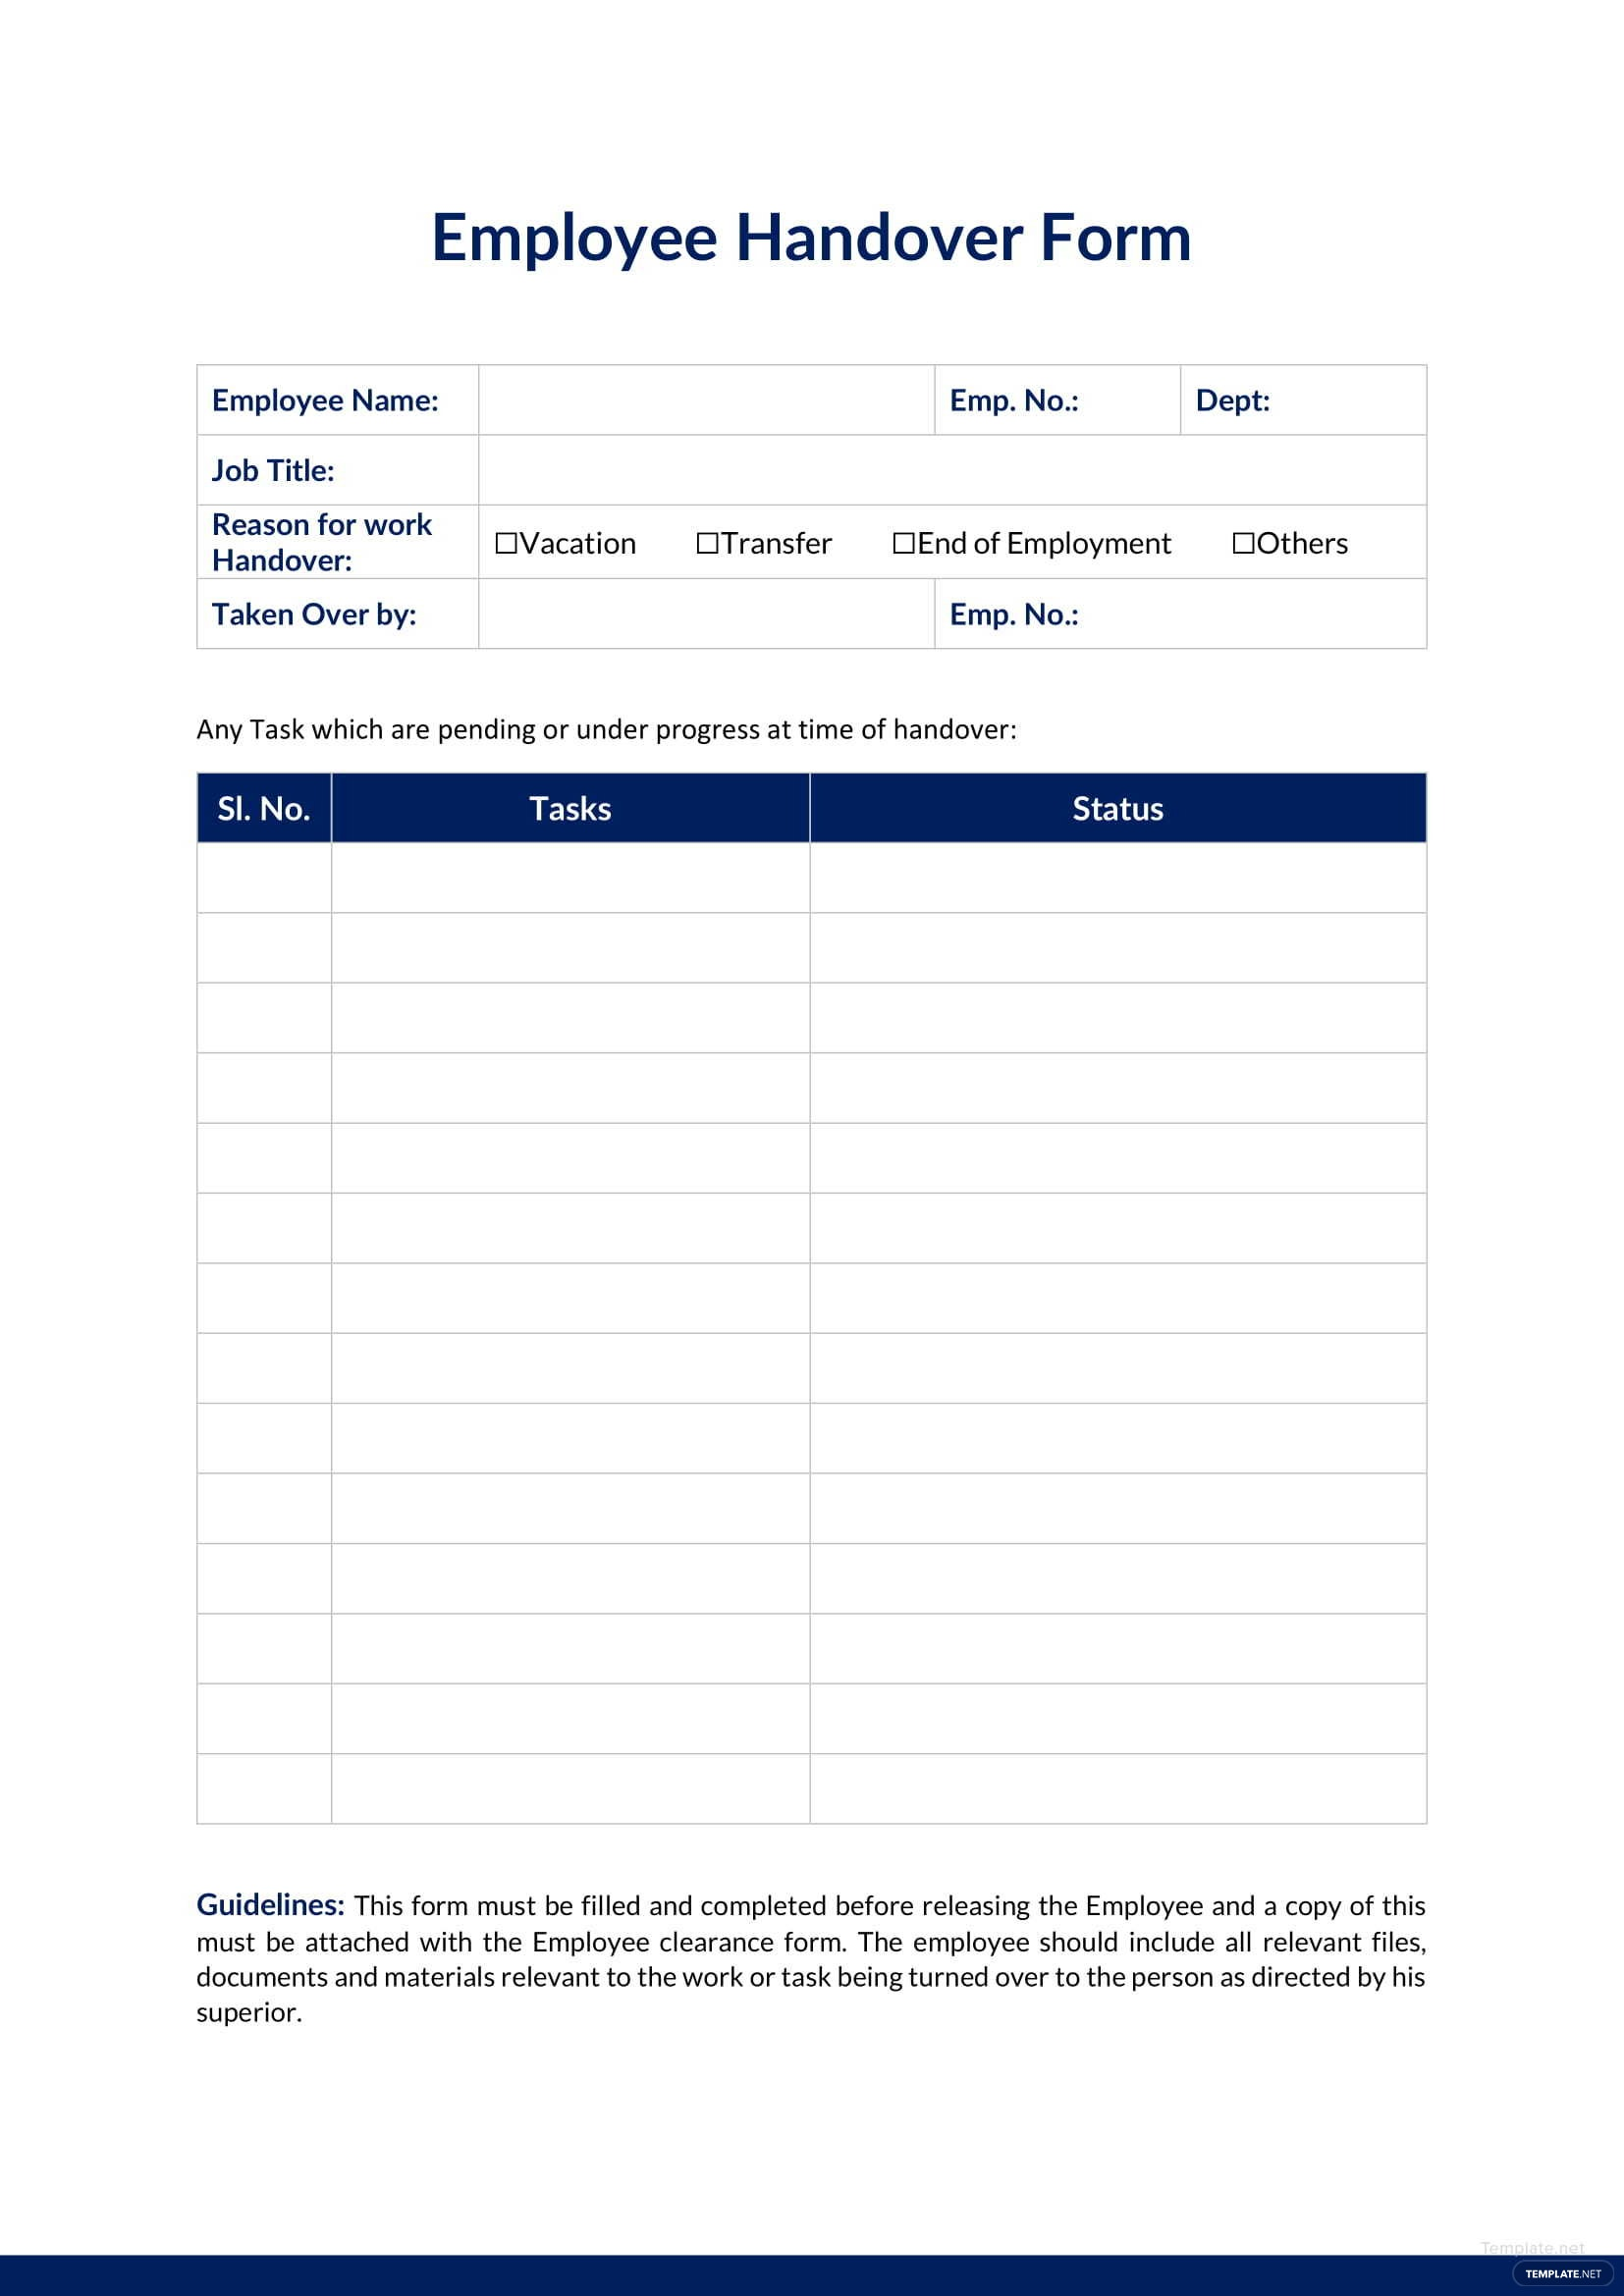 Employee handover report template in microsoft word apple for Job handover checklist template